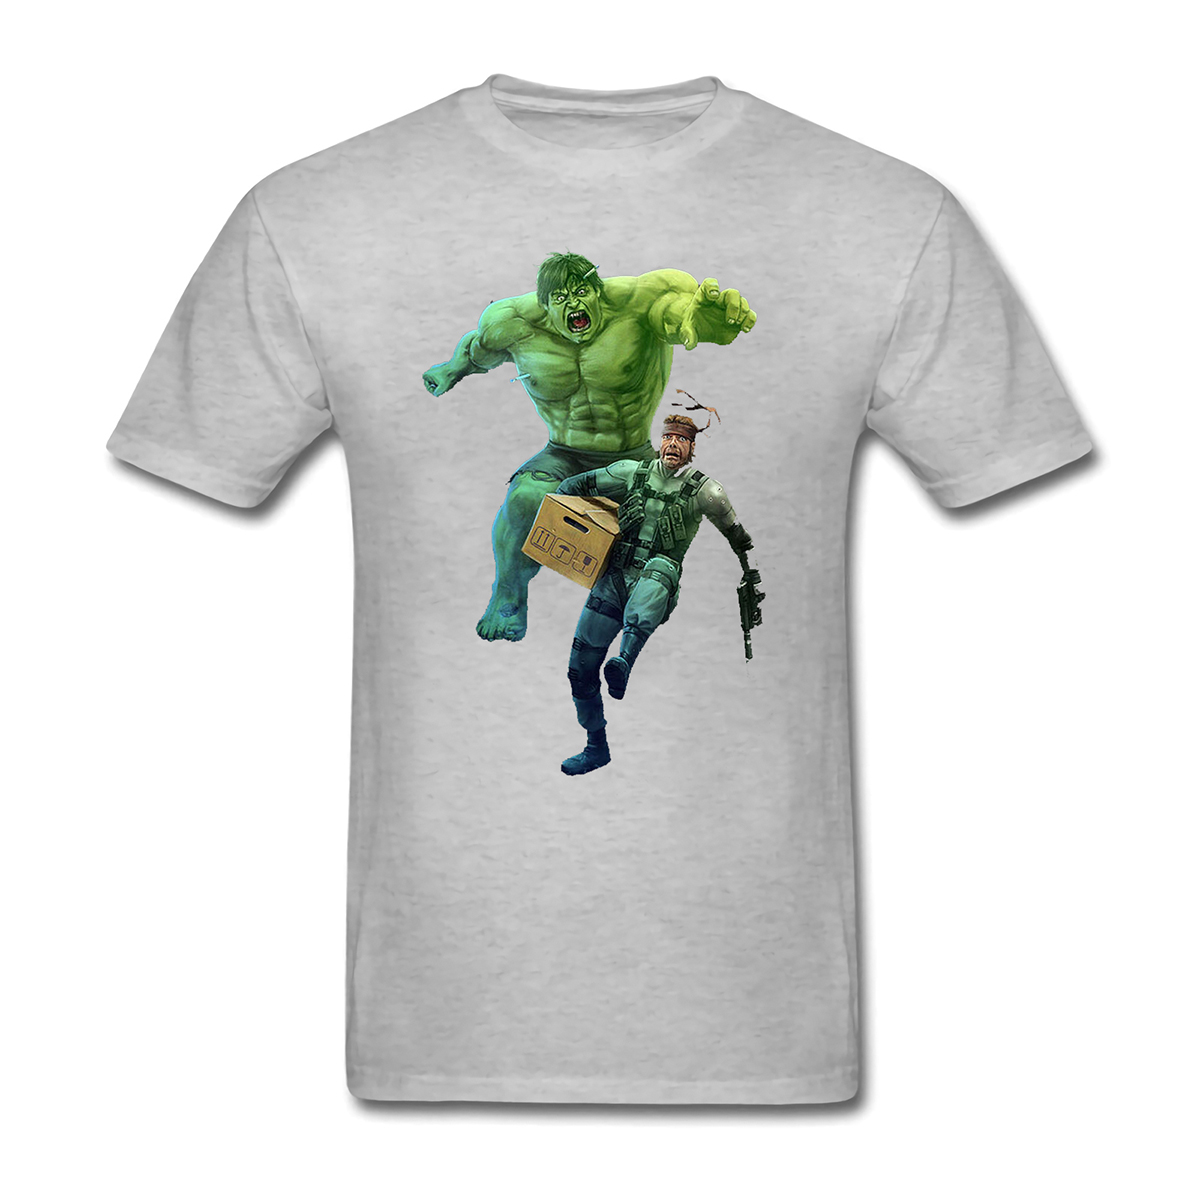 Metal Gear Solid Snake and Hulk inspi design Short Sleeve T-shirt for men and women